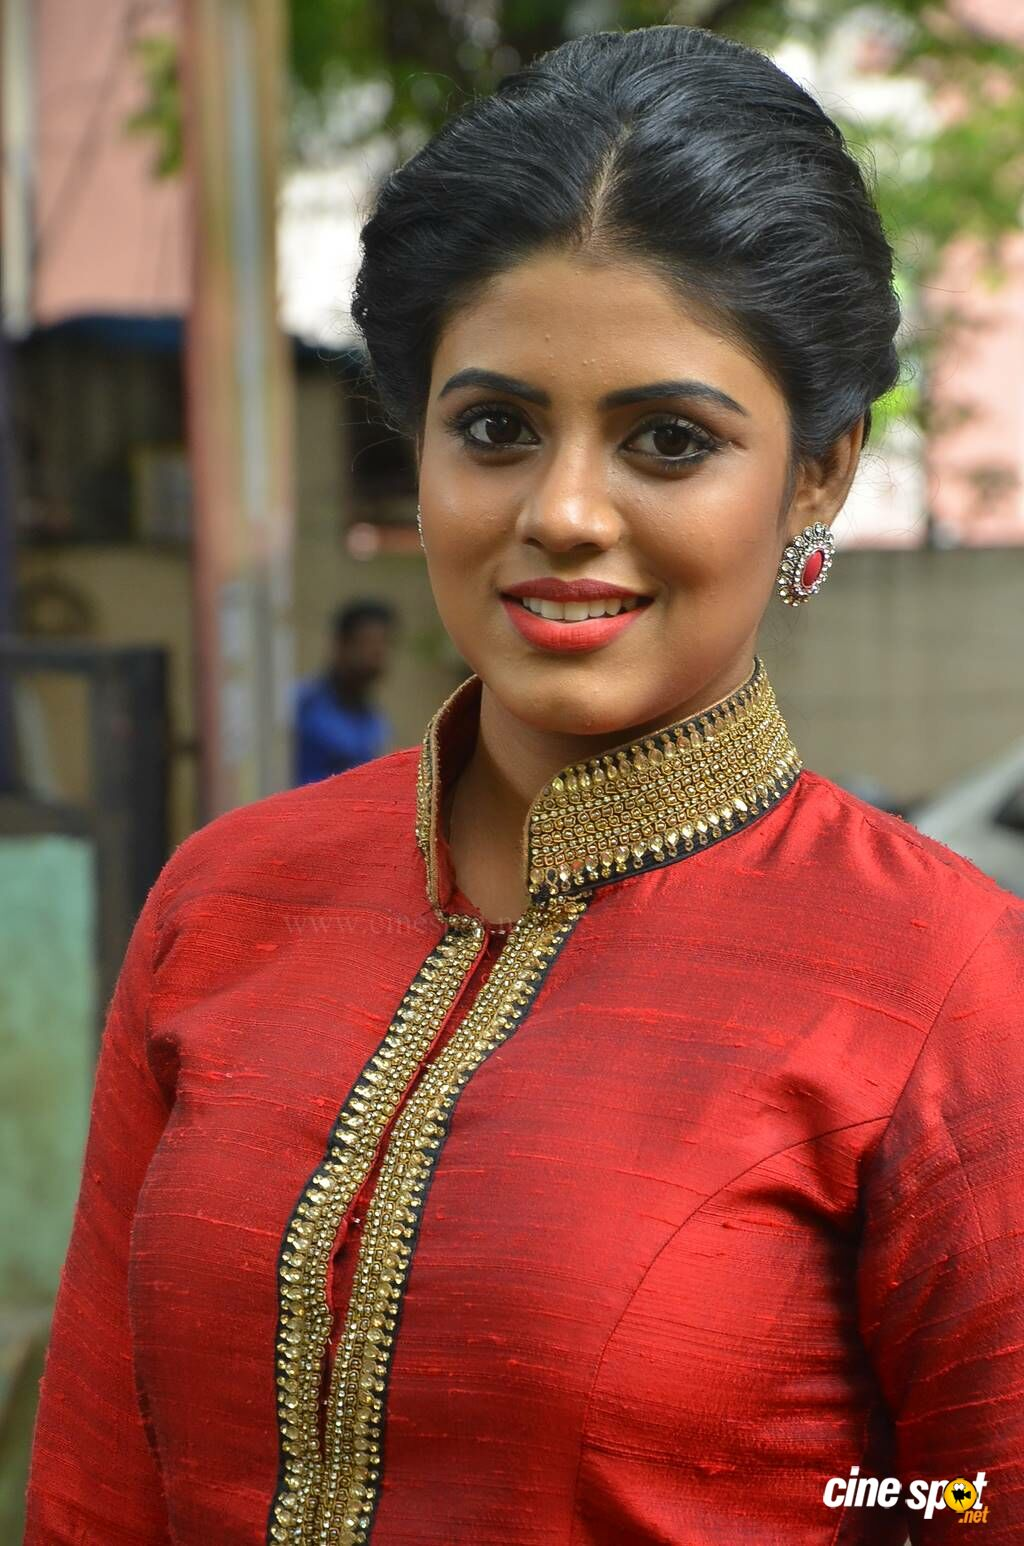 Http Www Cinespot Net Gallery V South Cinema Actress Iniya South Actress Photos Stills Iniya Latest Photos 10 Jpg Html